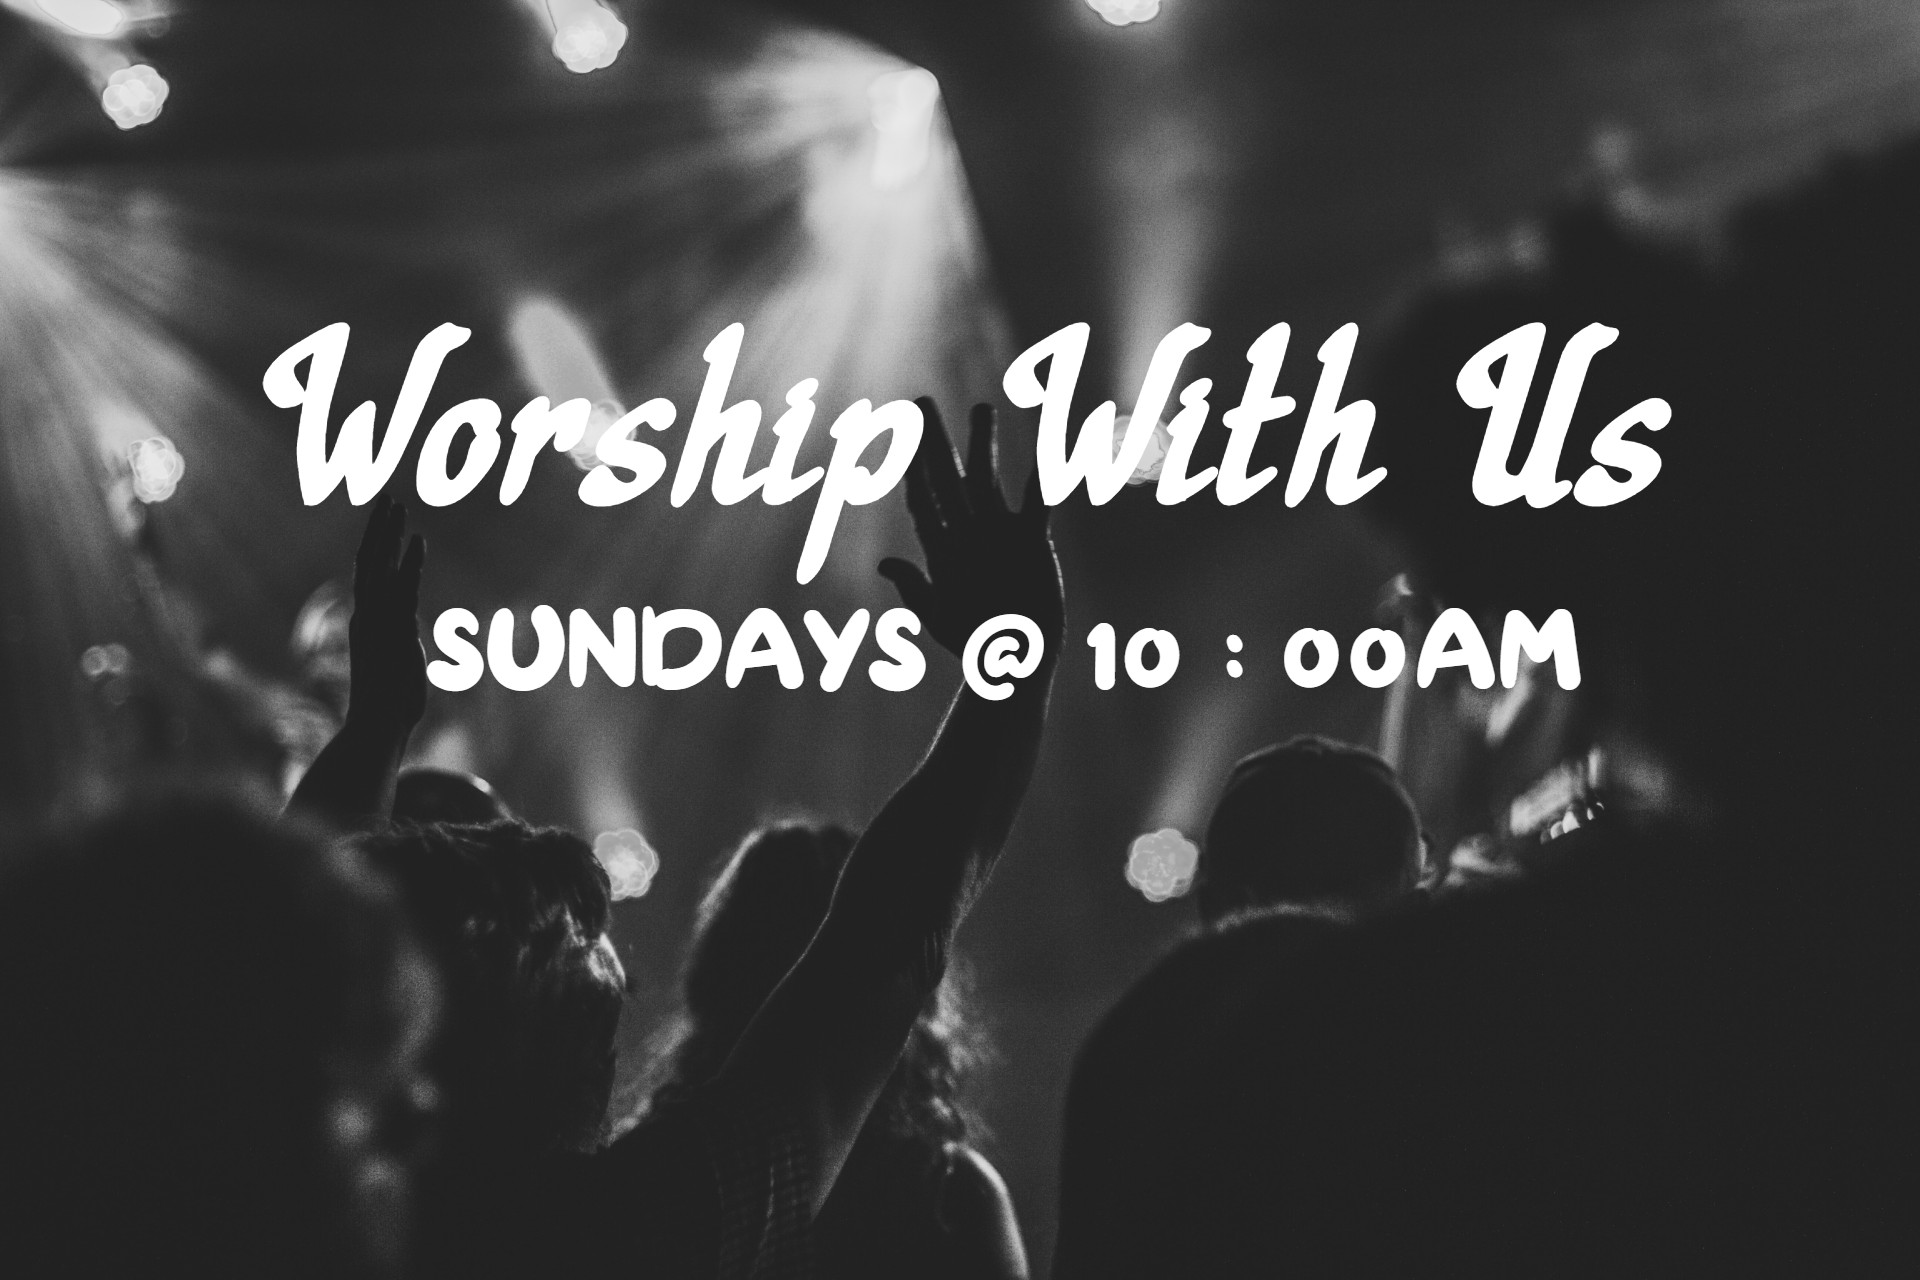 Worship With Us - The Redeemed Christian Church of God